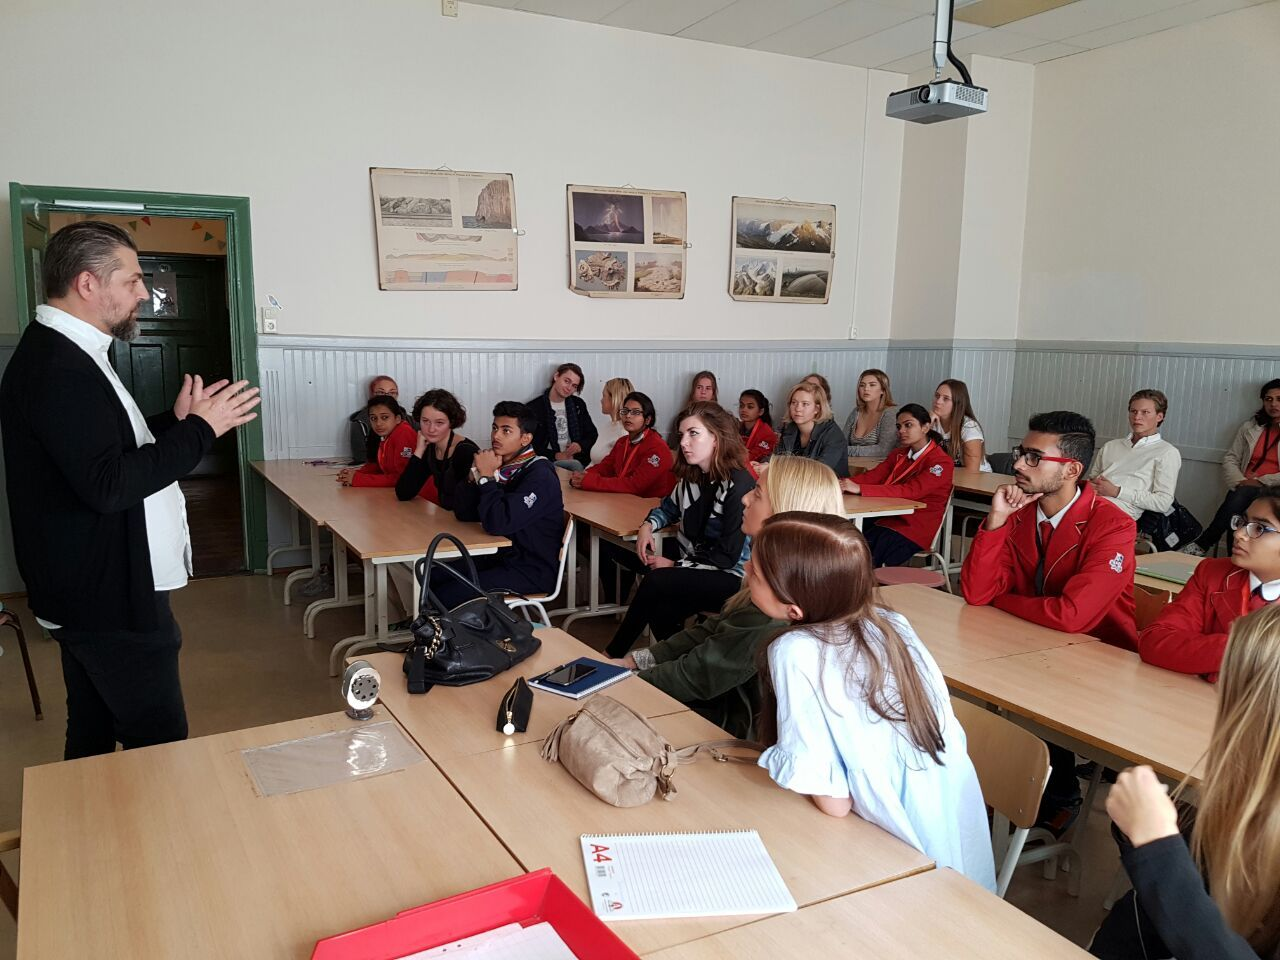 Punctuality and Cleanliness in Sweden impress CPS Students